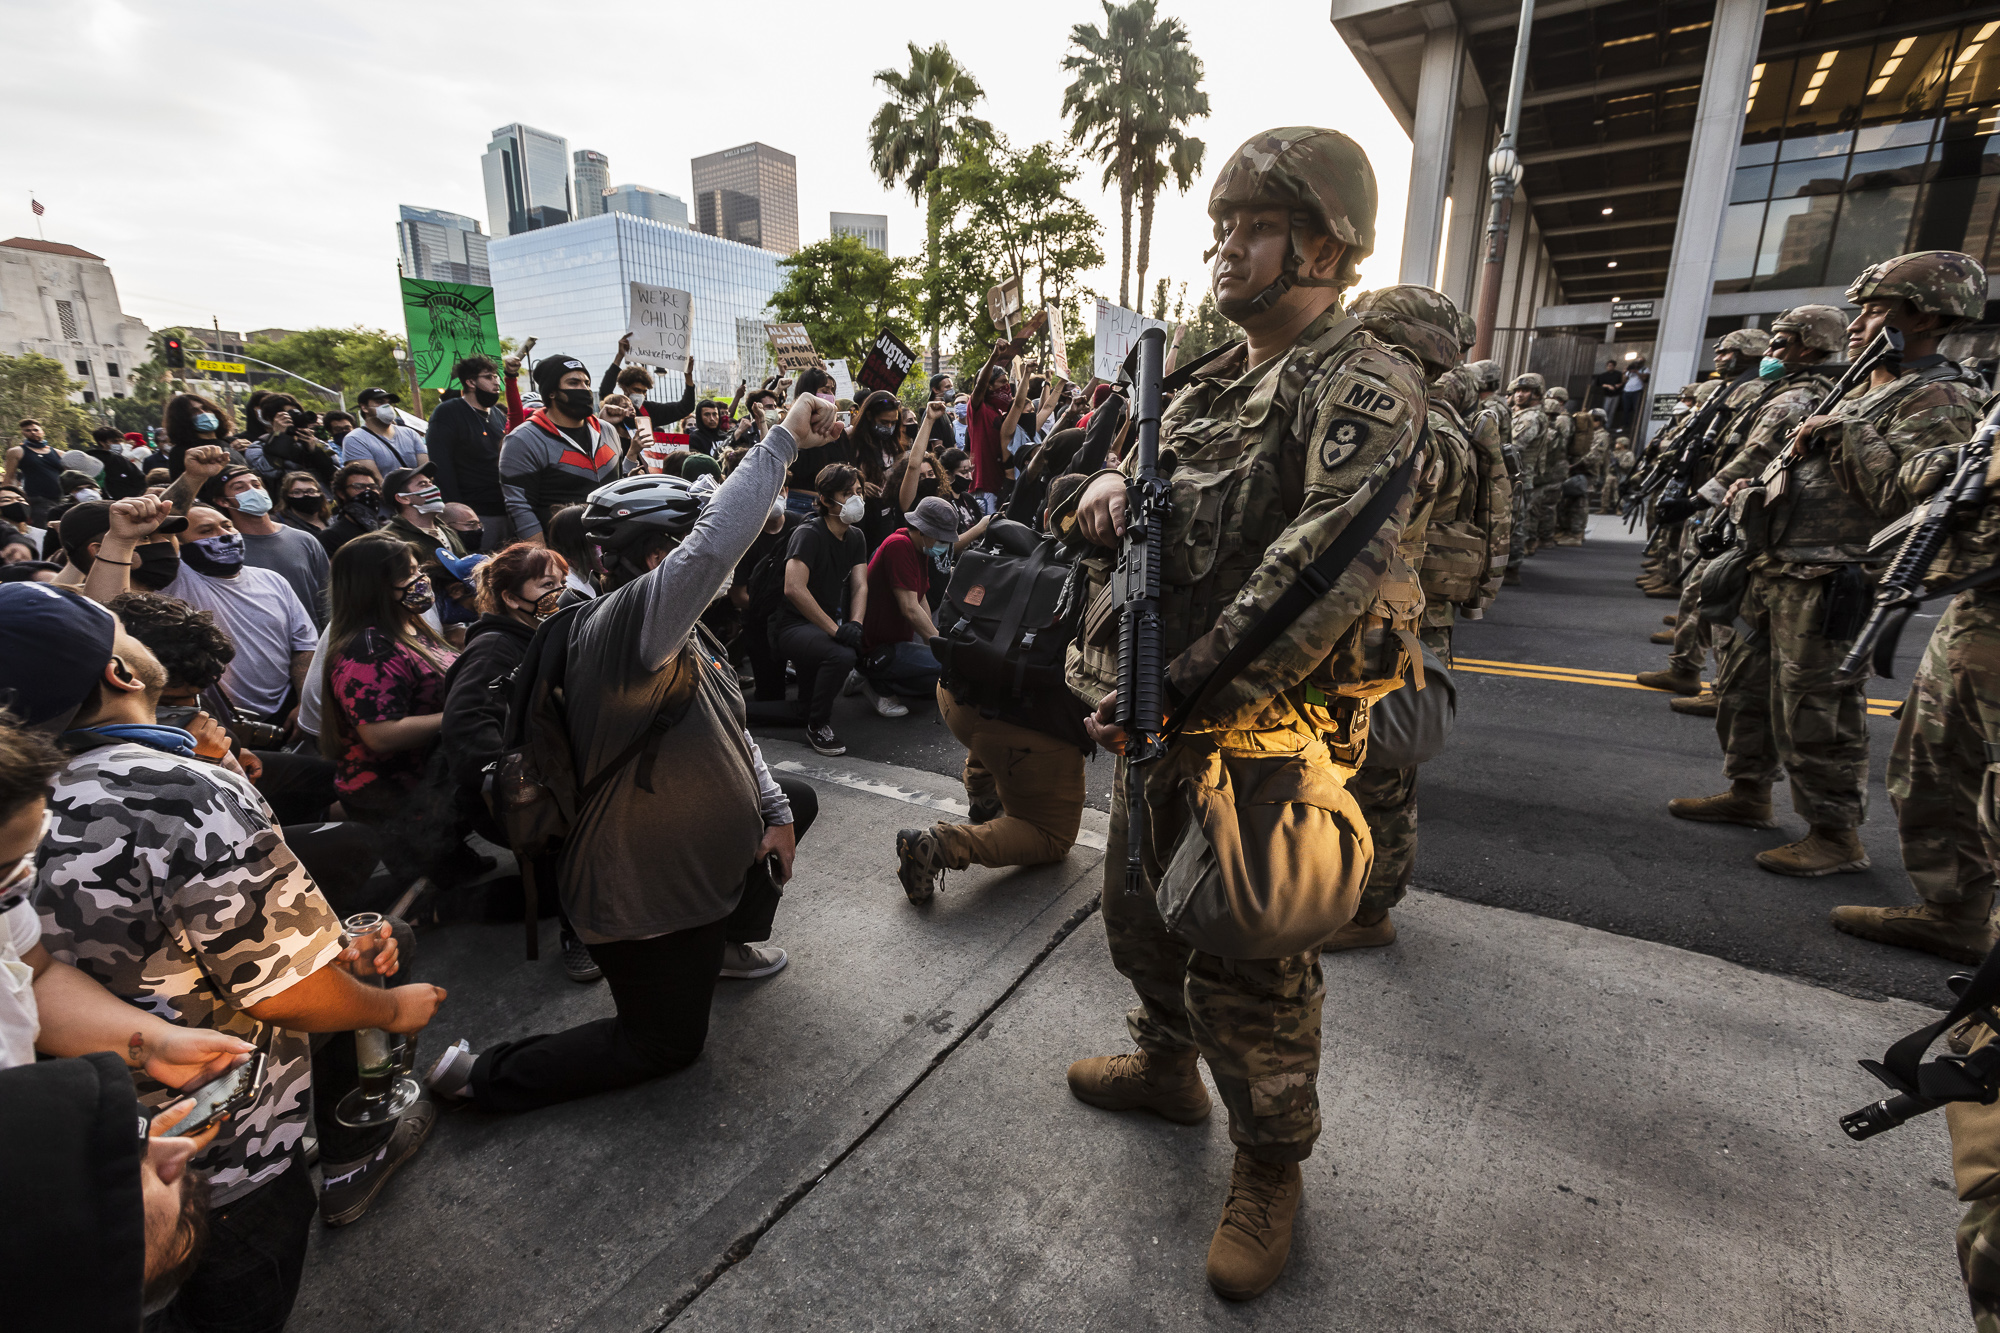 The California National Guard is deployed around Los Angeles City Hall during one of several protests in response to the killing of George Floyd by police in Minneapolis, on May 31, 2020. Photo by Ted Soqui, SIPA USA via AP Images